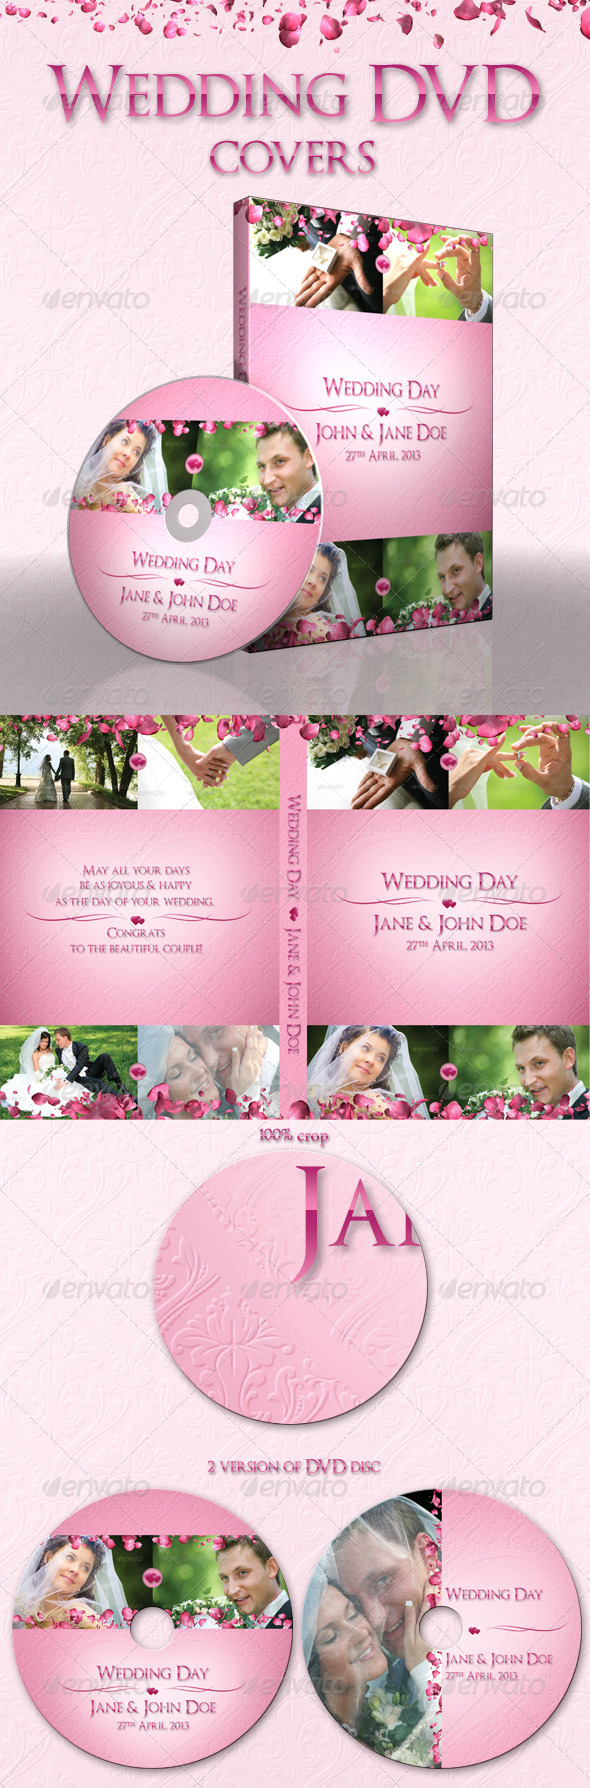 Wedding DVD covers - CD & DVD artwork Print Templates